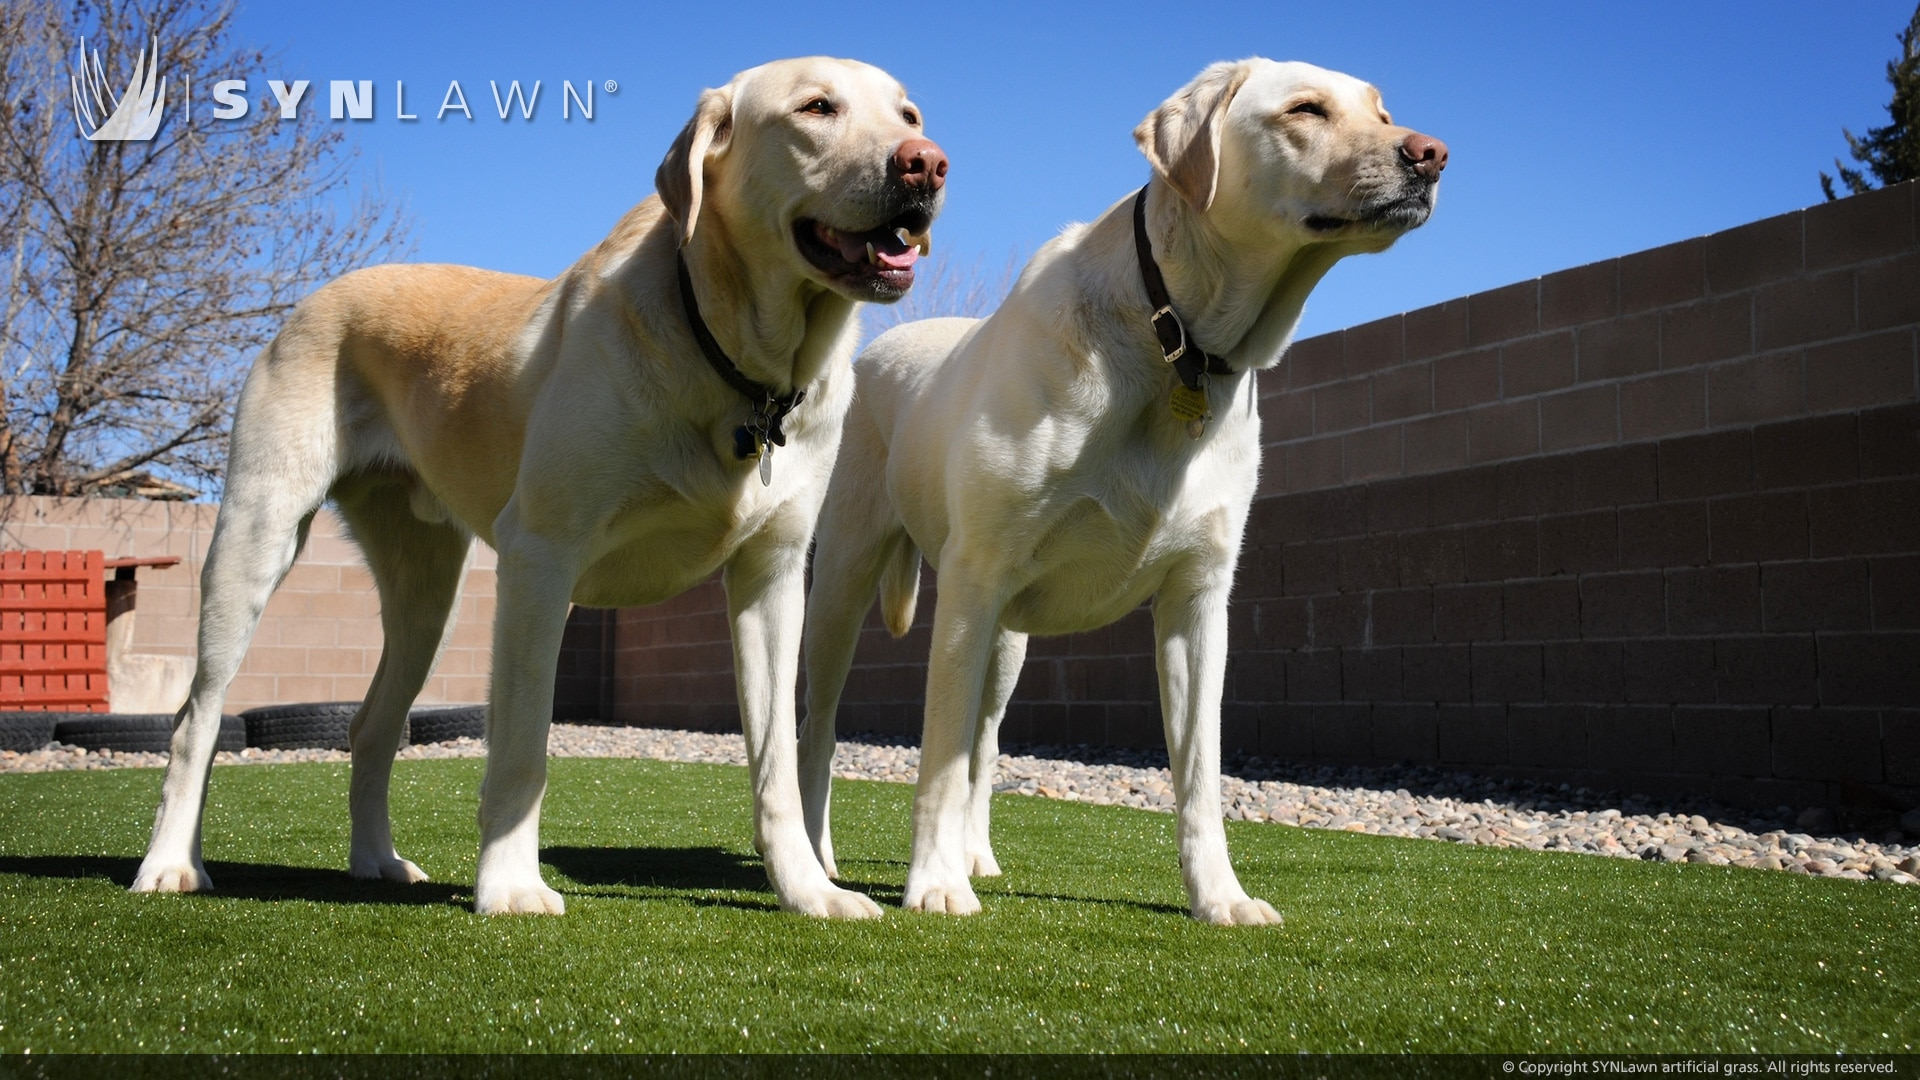 two dogs standing on artificial pet turf